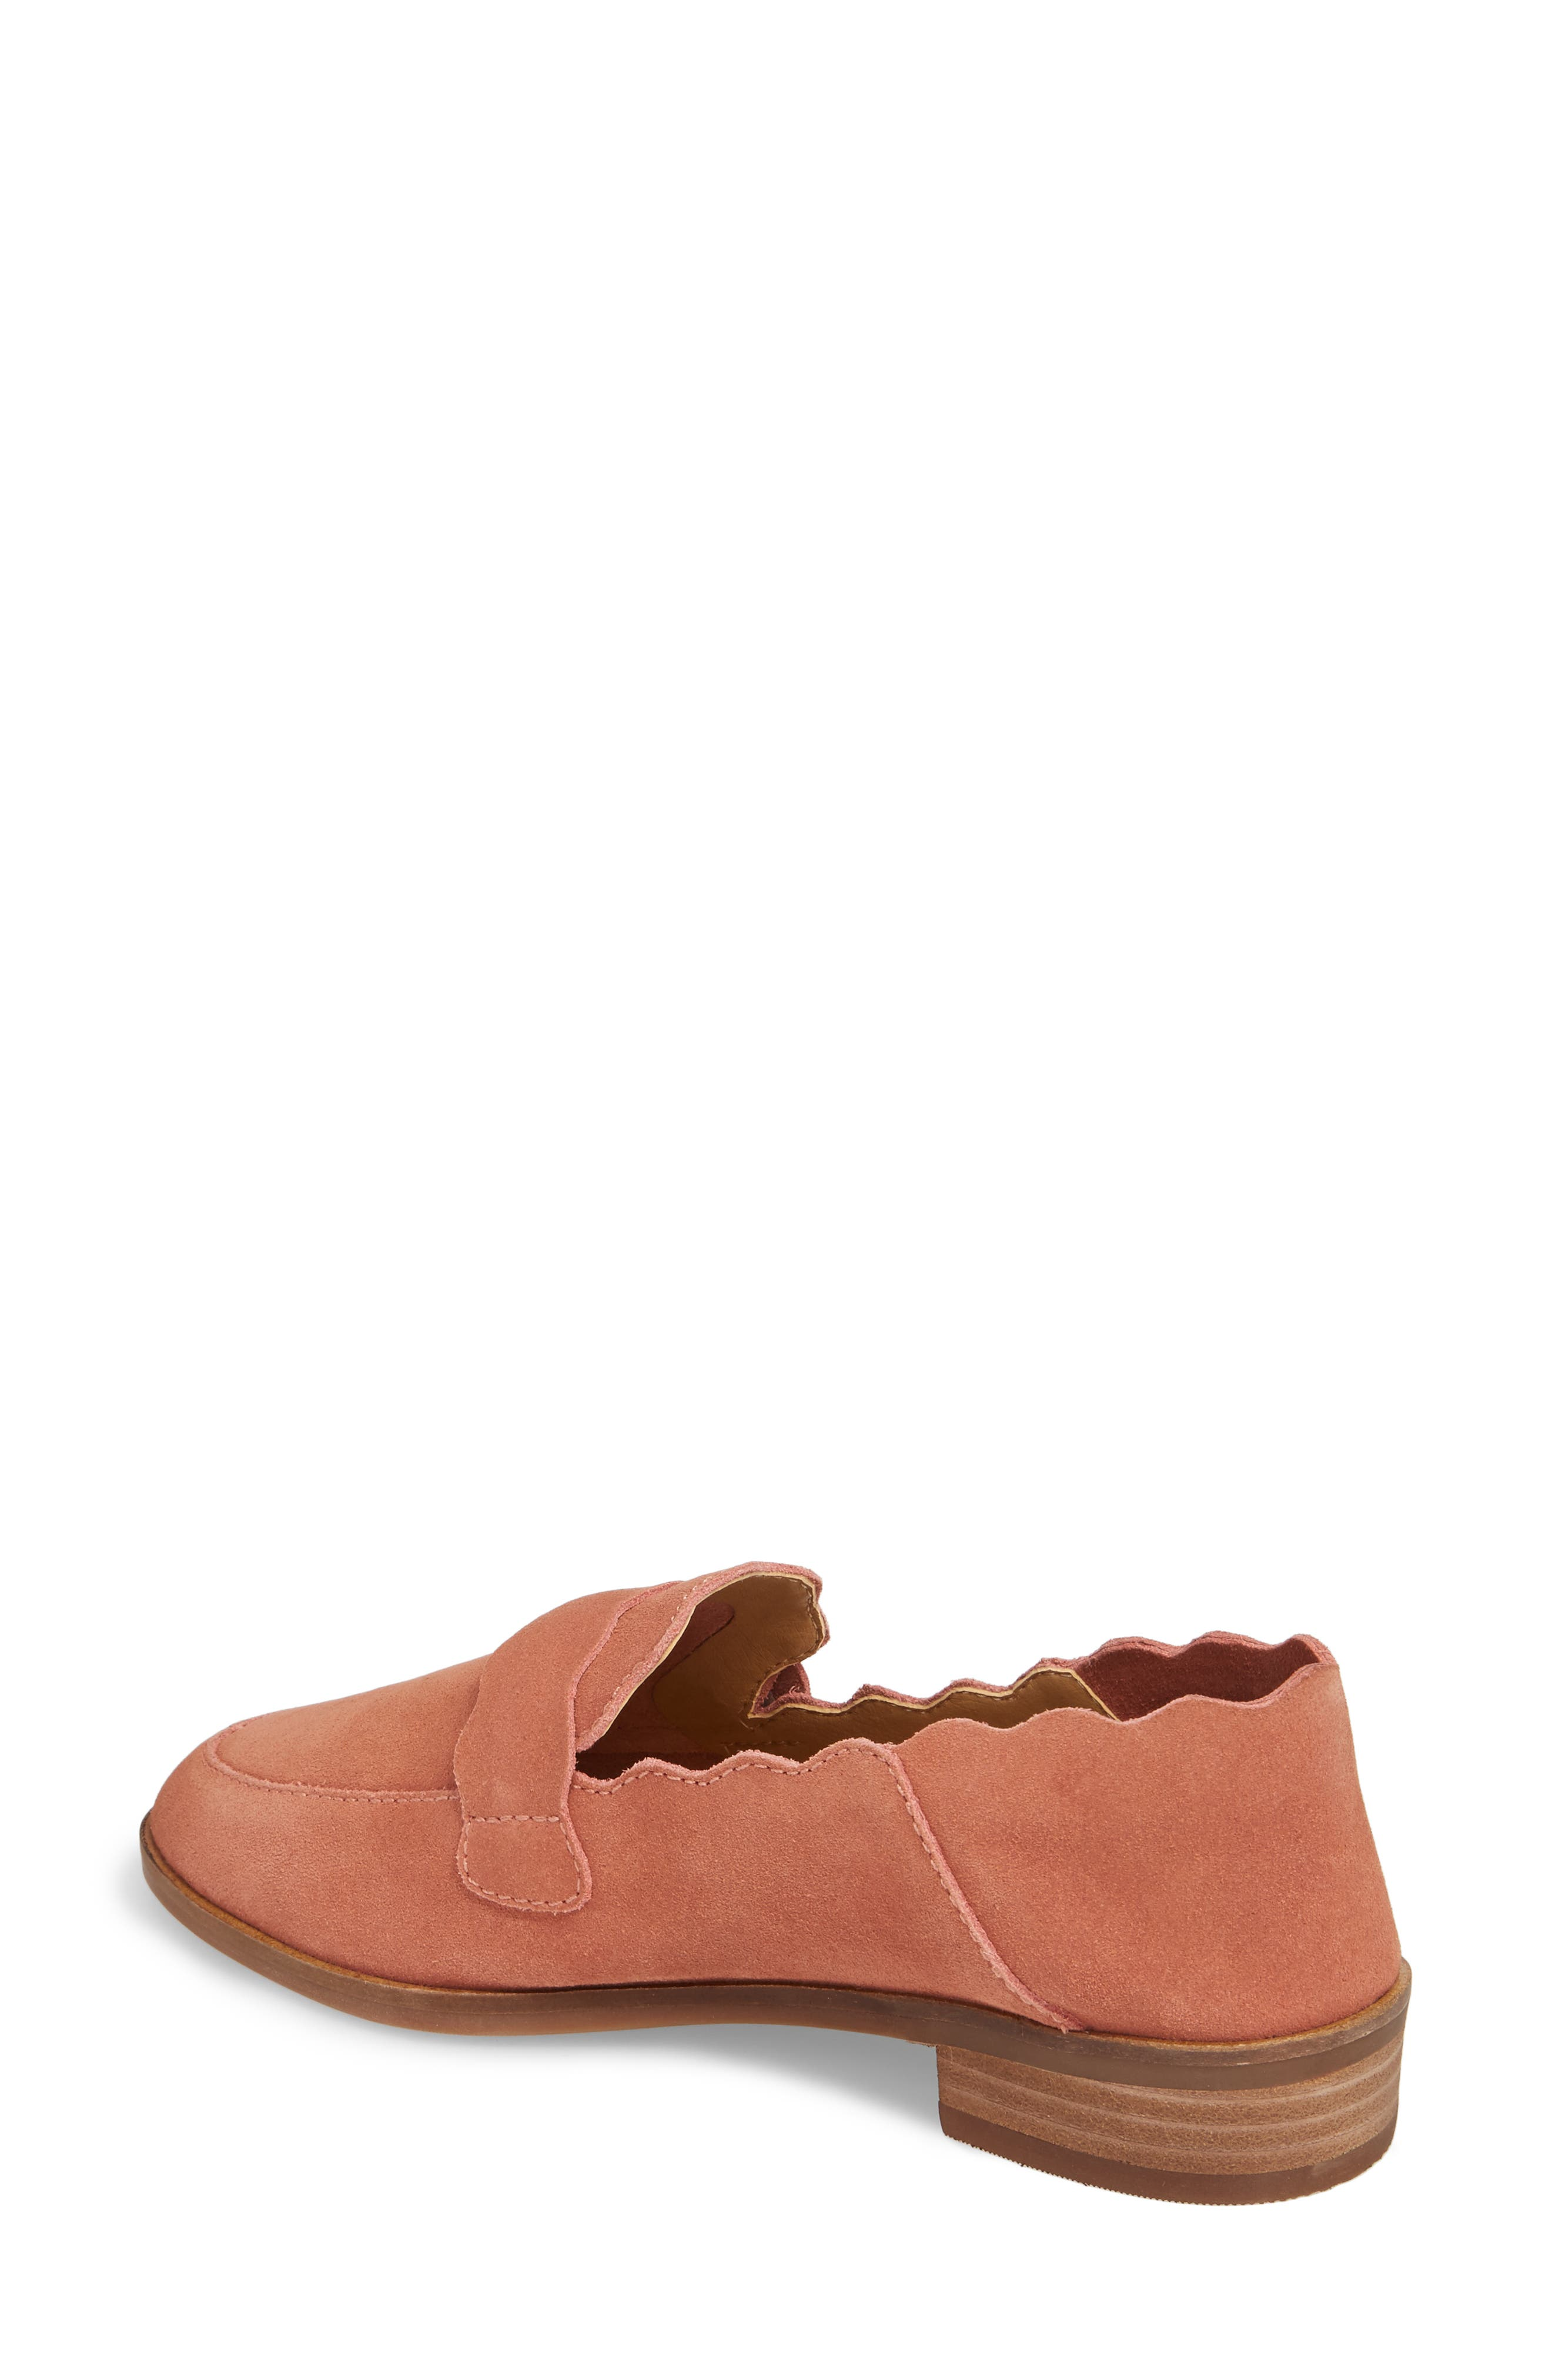 Callister Loafer,                             Alternate thumbnail 2, color,                             Canyon Rose Suede